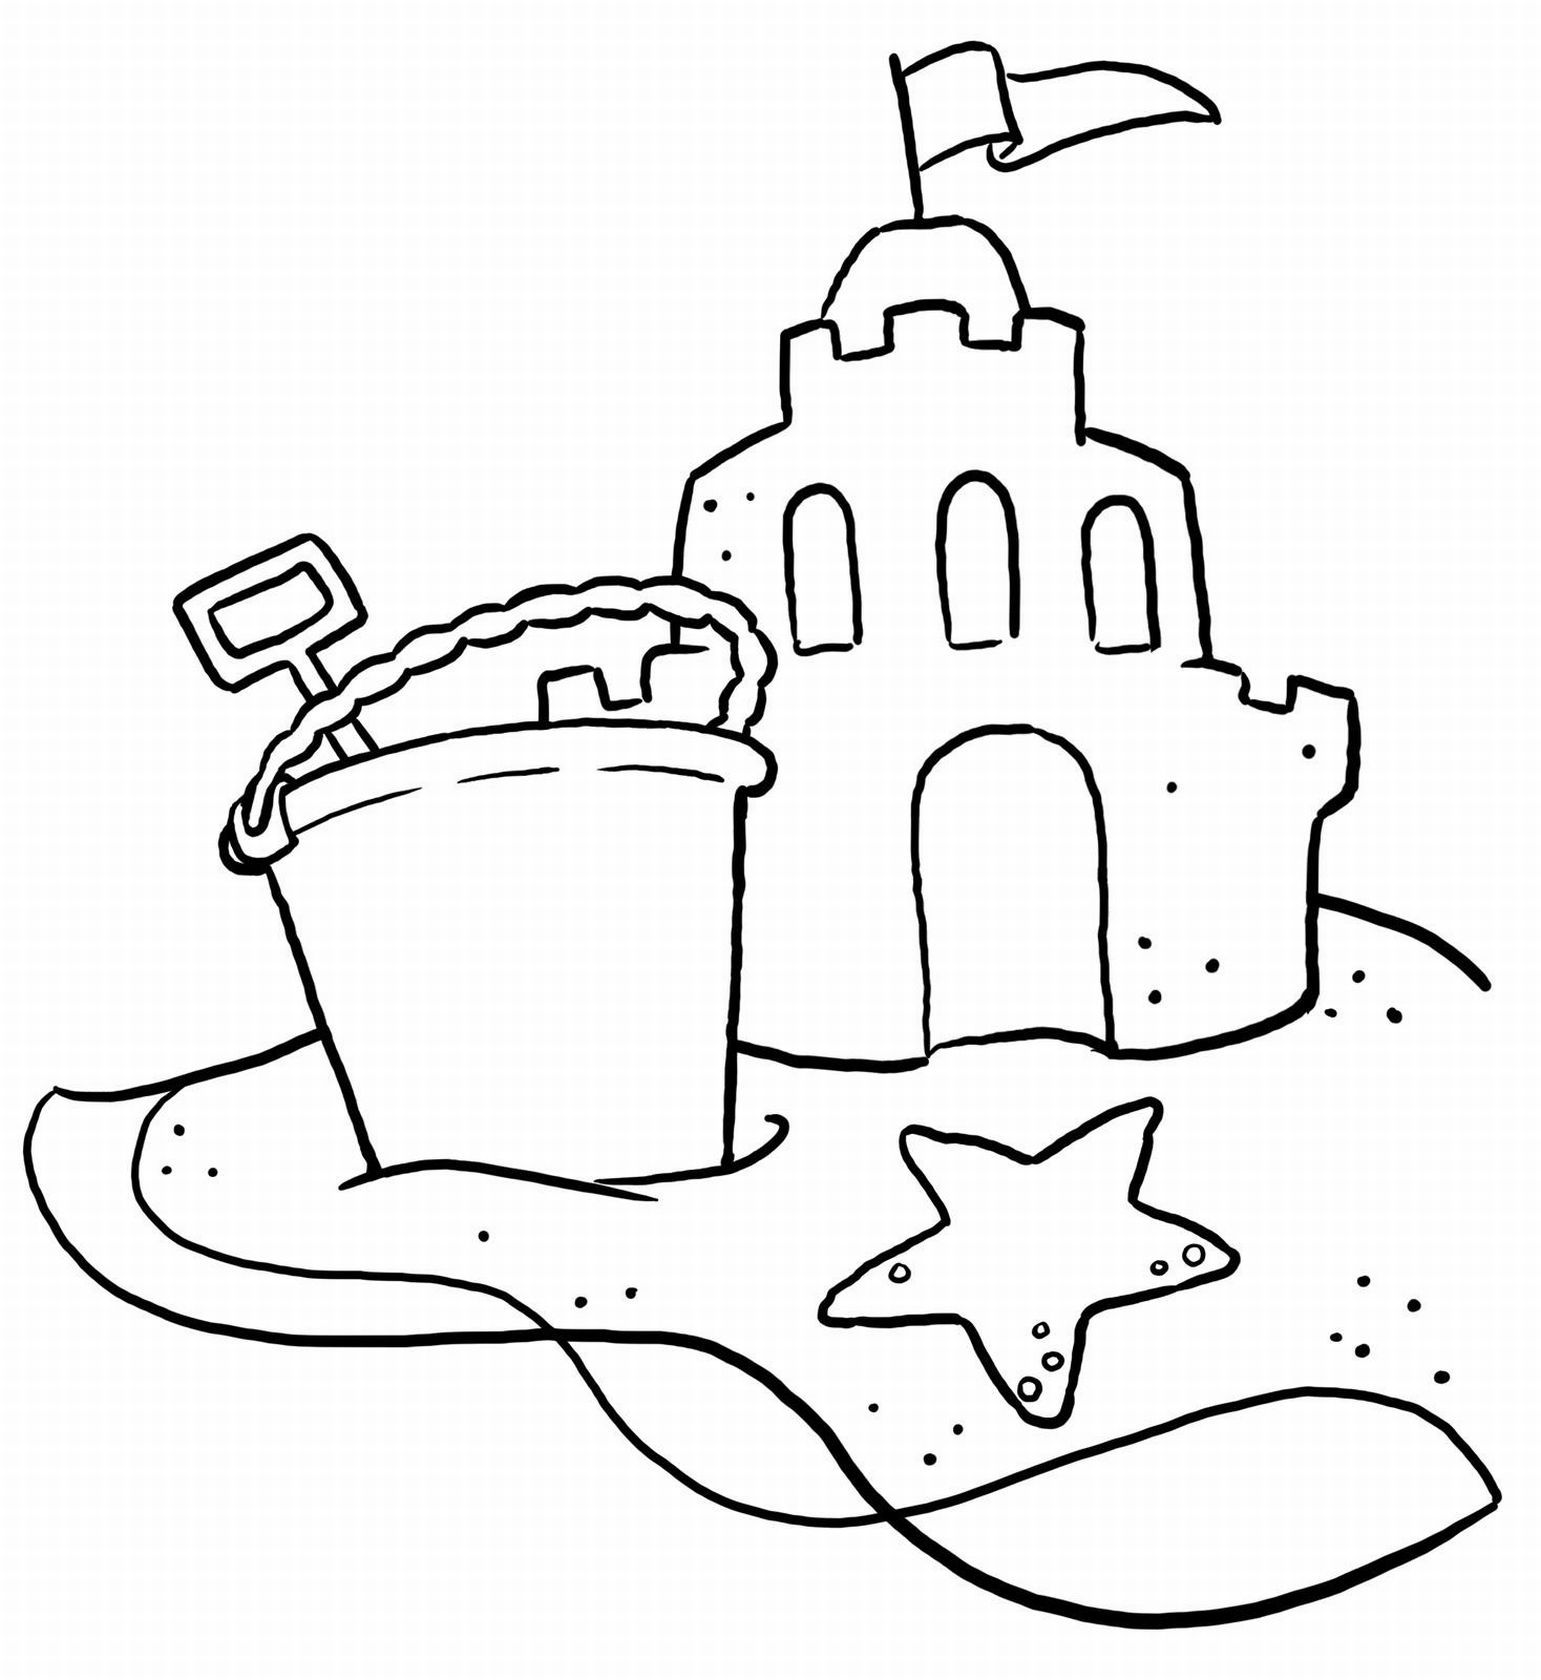 1541x1680 Beach Coloring Pages Free Printable Sheets To Color Beach